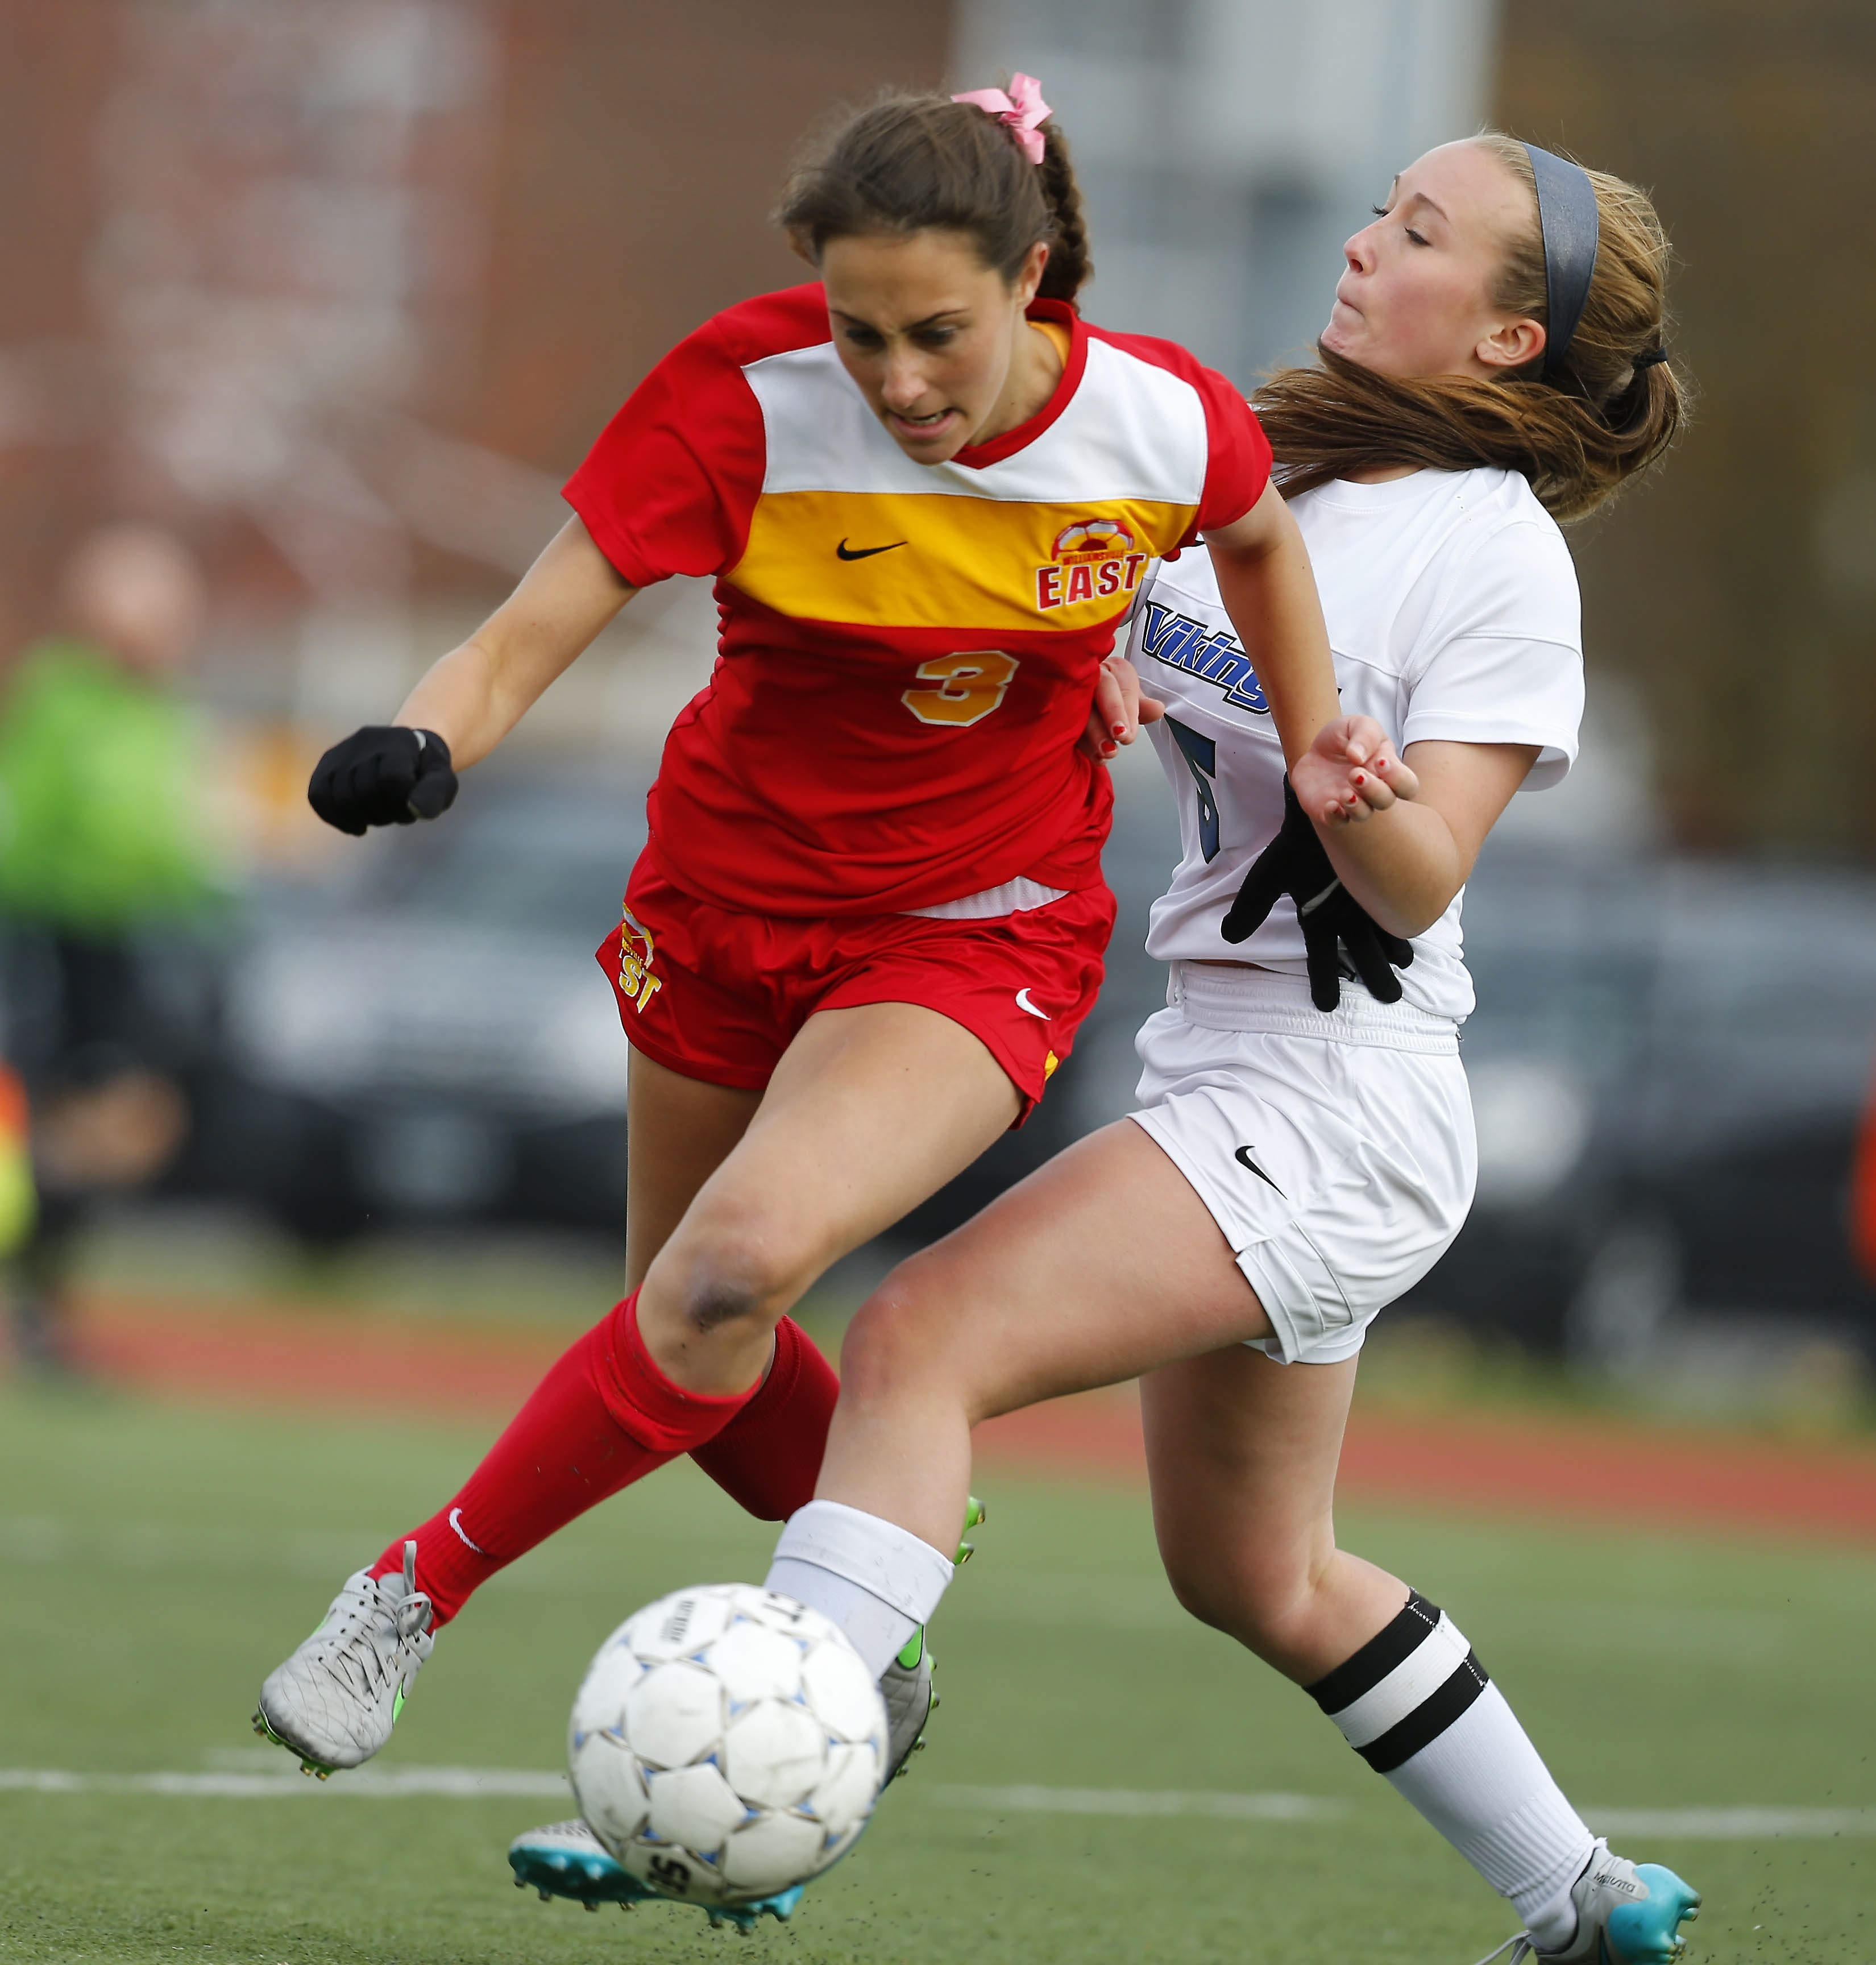 Williamsville East's Marissa Birzon was pretty much unstoppable as she scored all four goals for the third-seeded Flames in their overtime win over top seed Grand Island.  (Mark Mulville/Buffalo News)